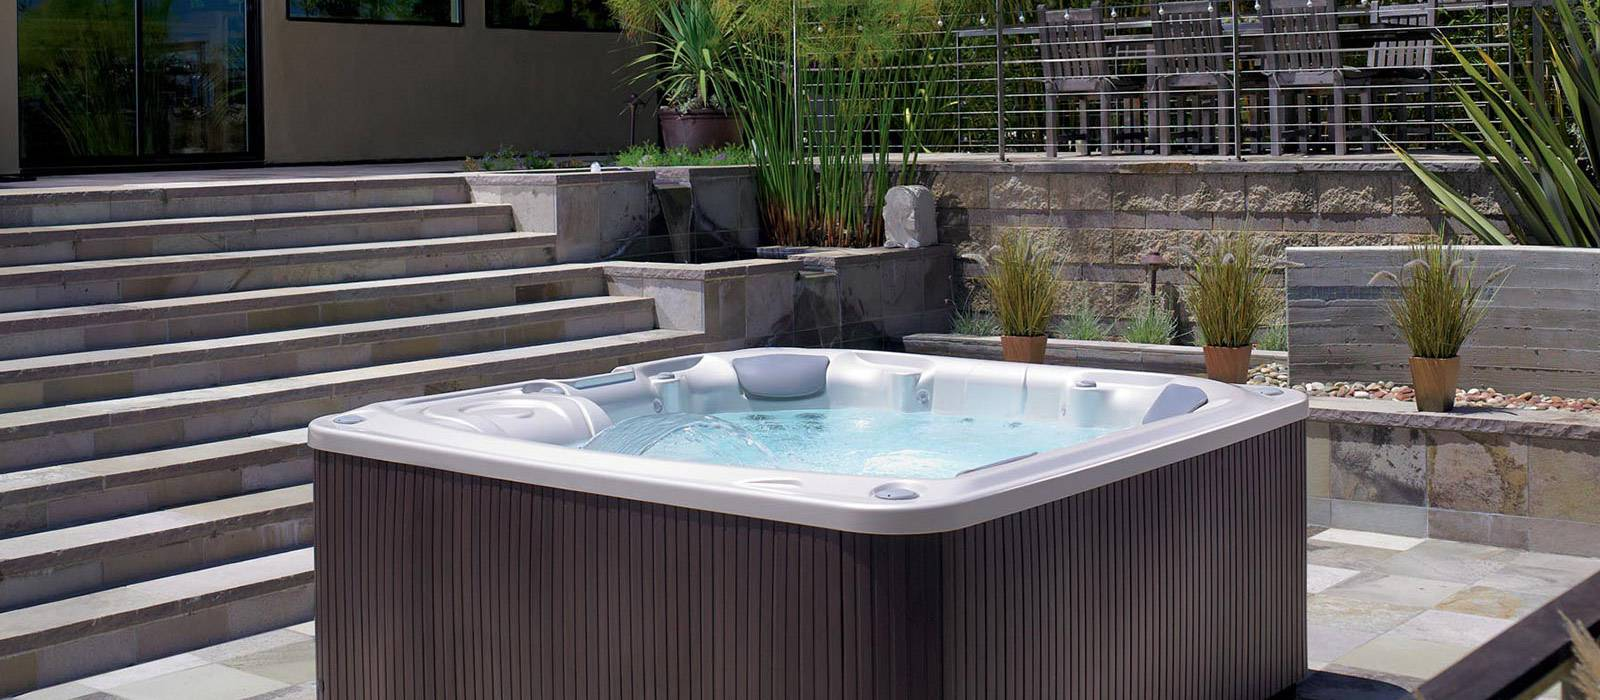 Gallery - Mountain Hot Tub